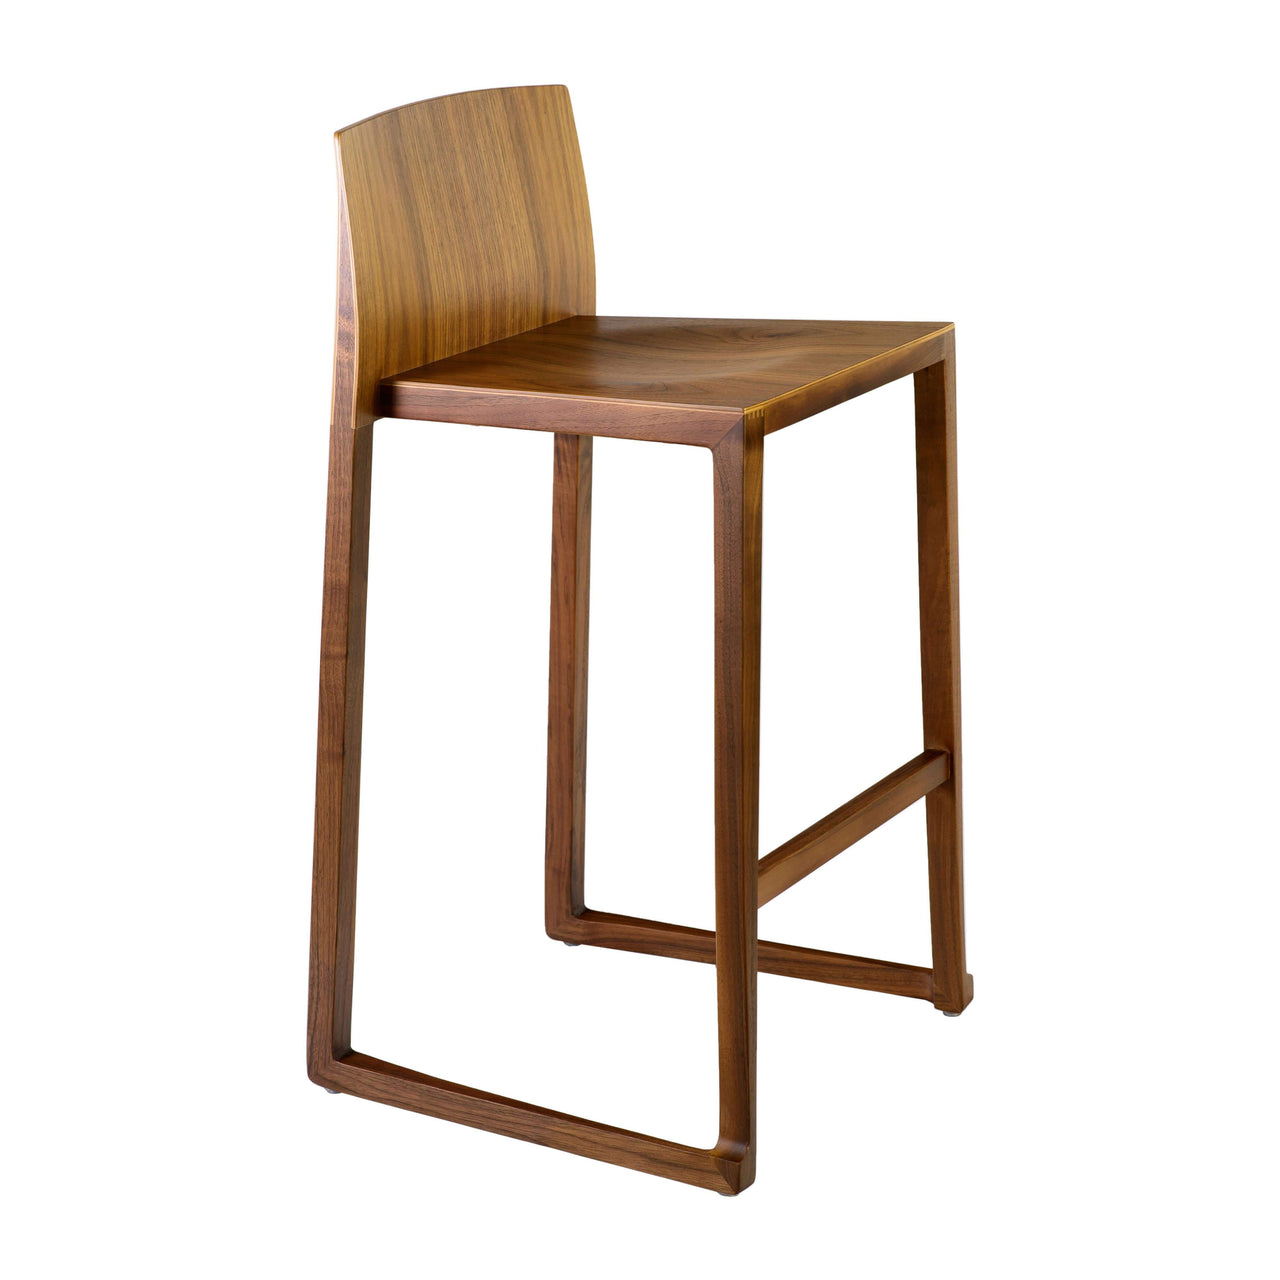 Hanna Bar + Counter Stool: Natural